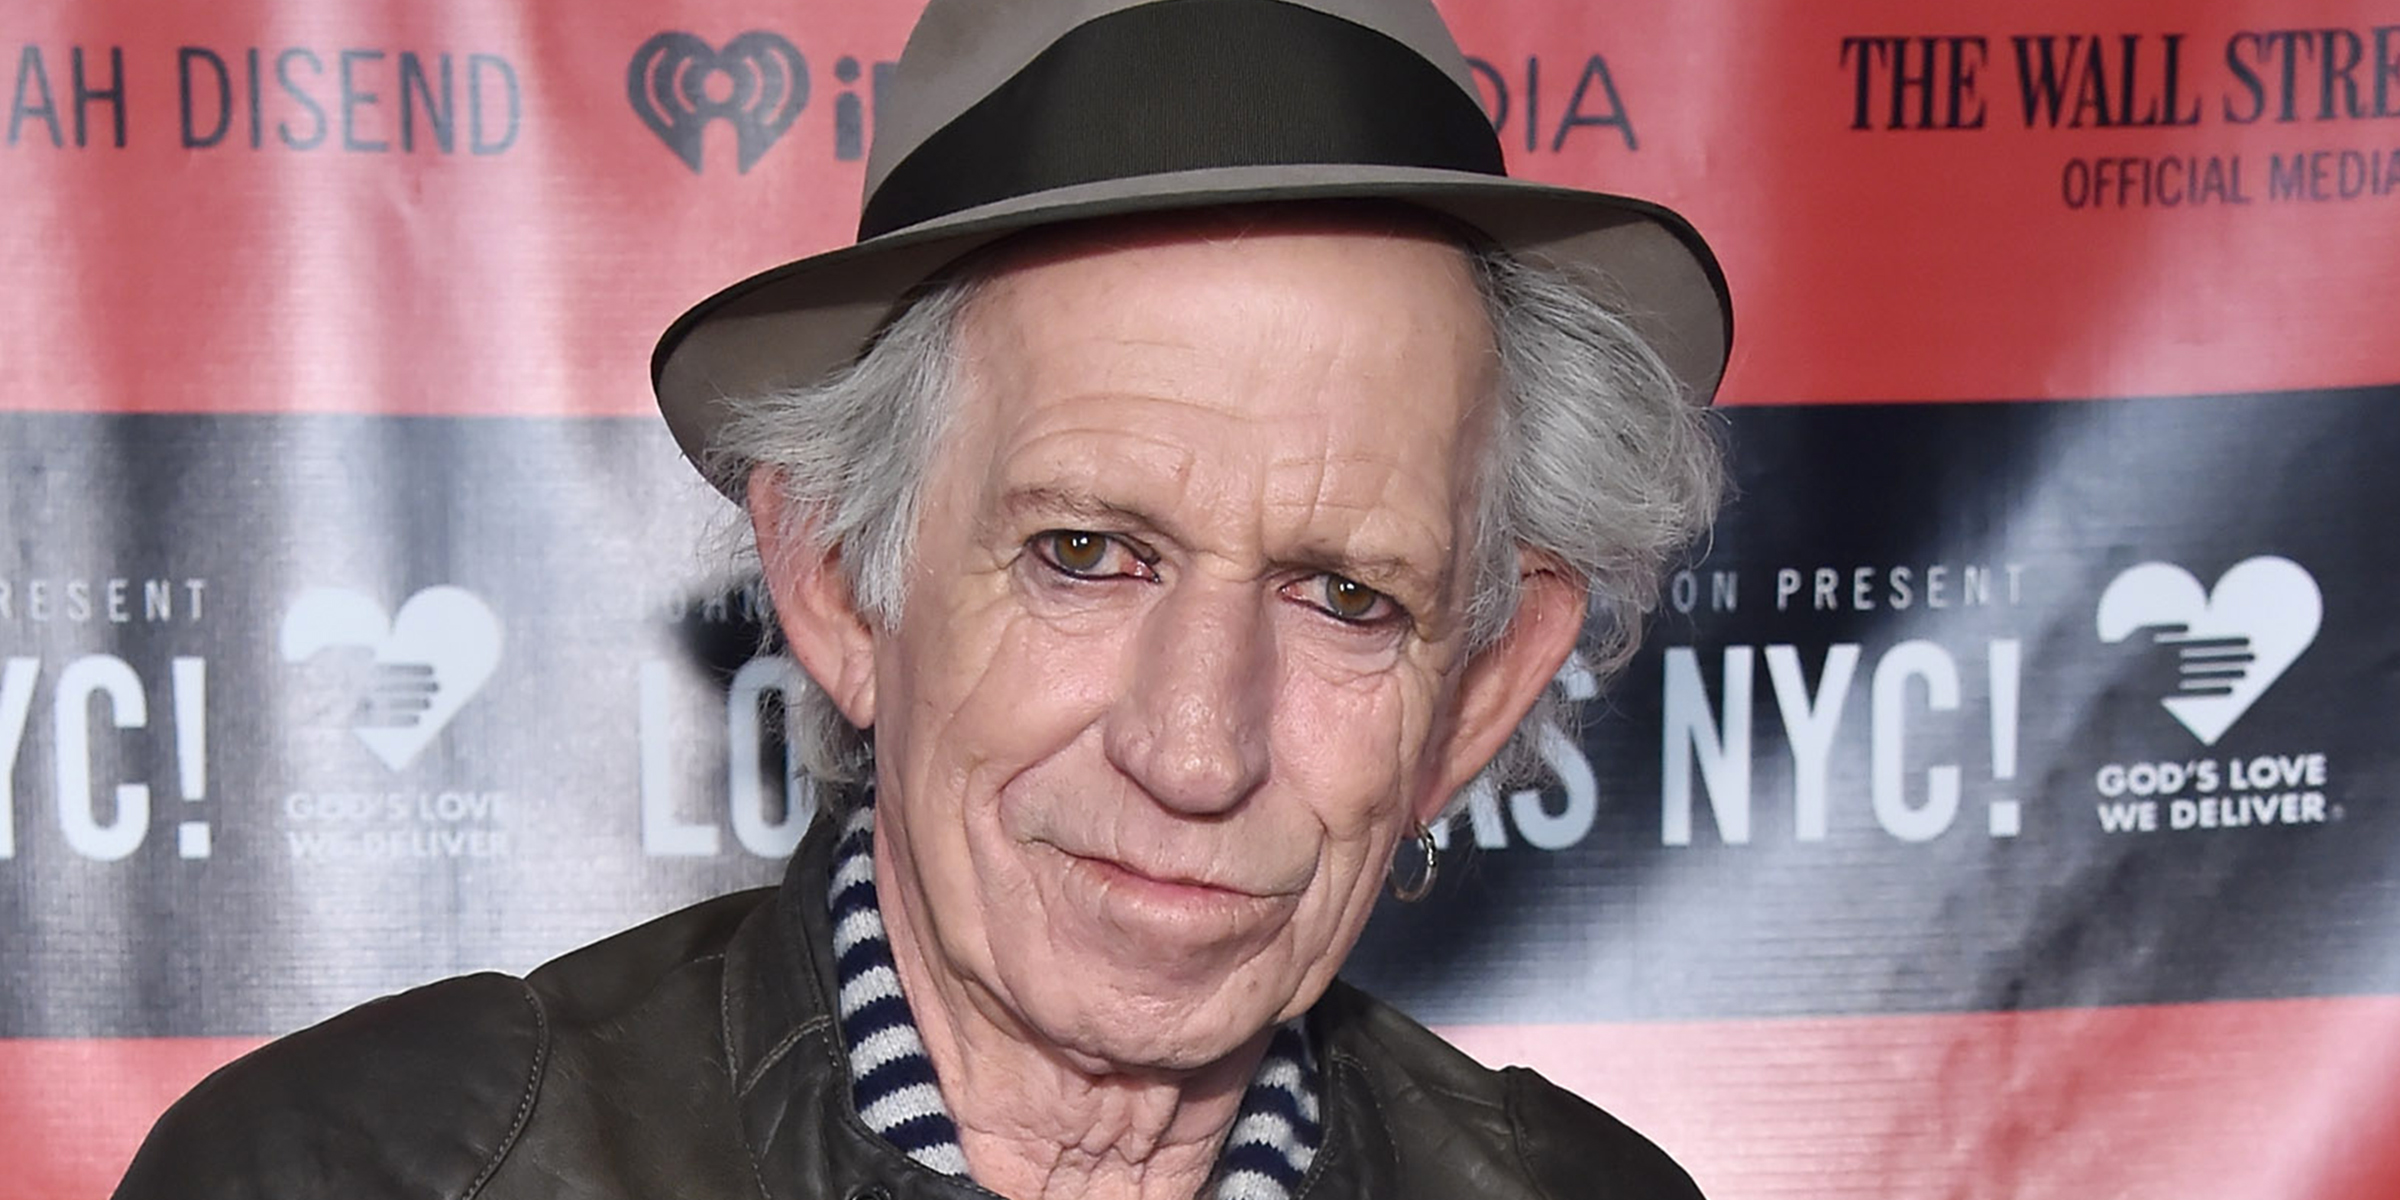 Keith Richards says he quit drinking: 'I didn't want that anymore'